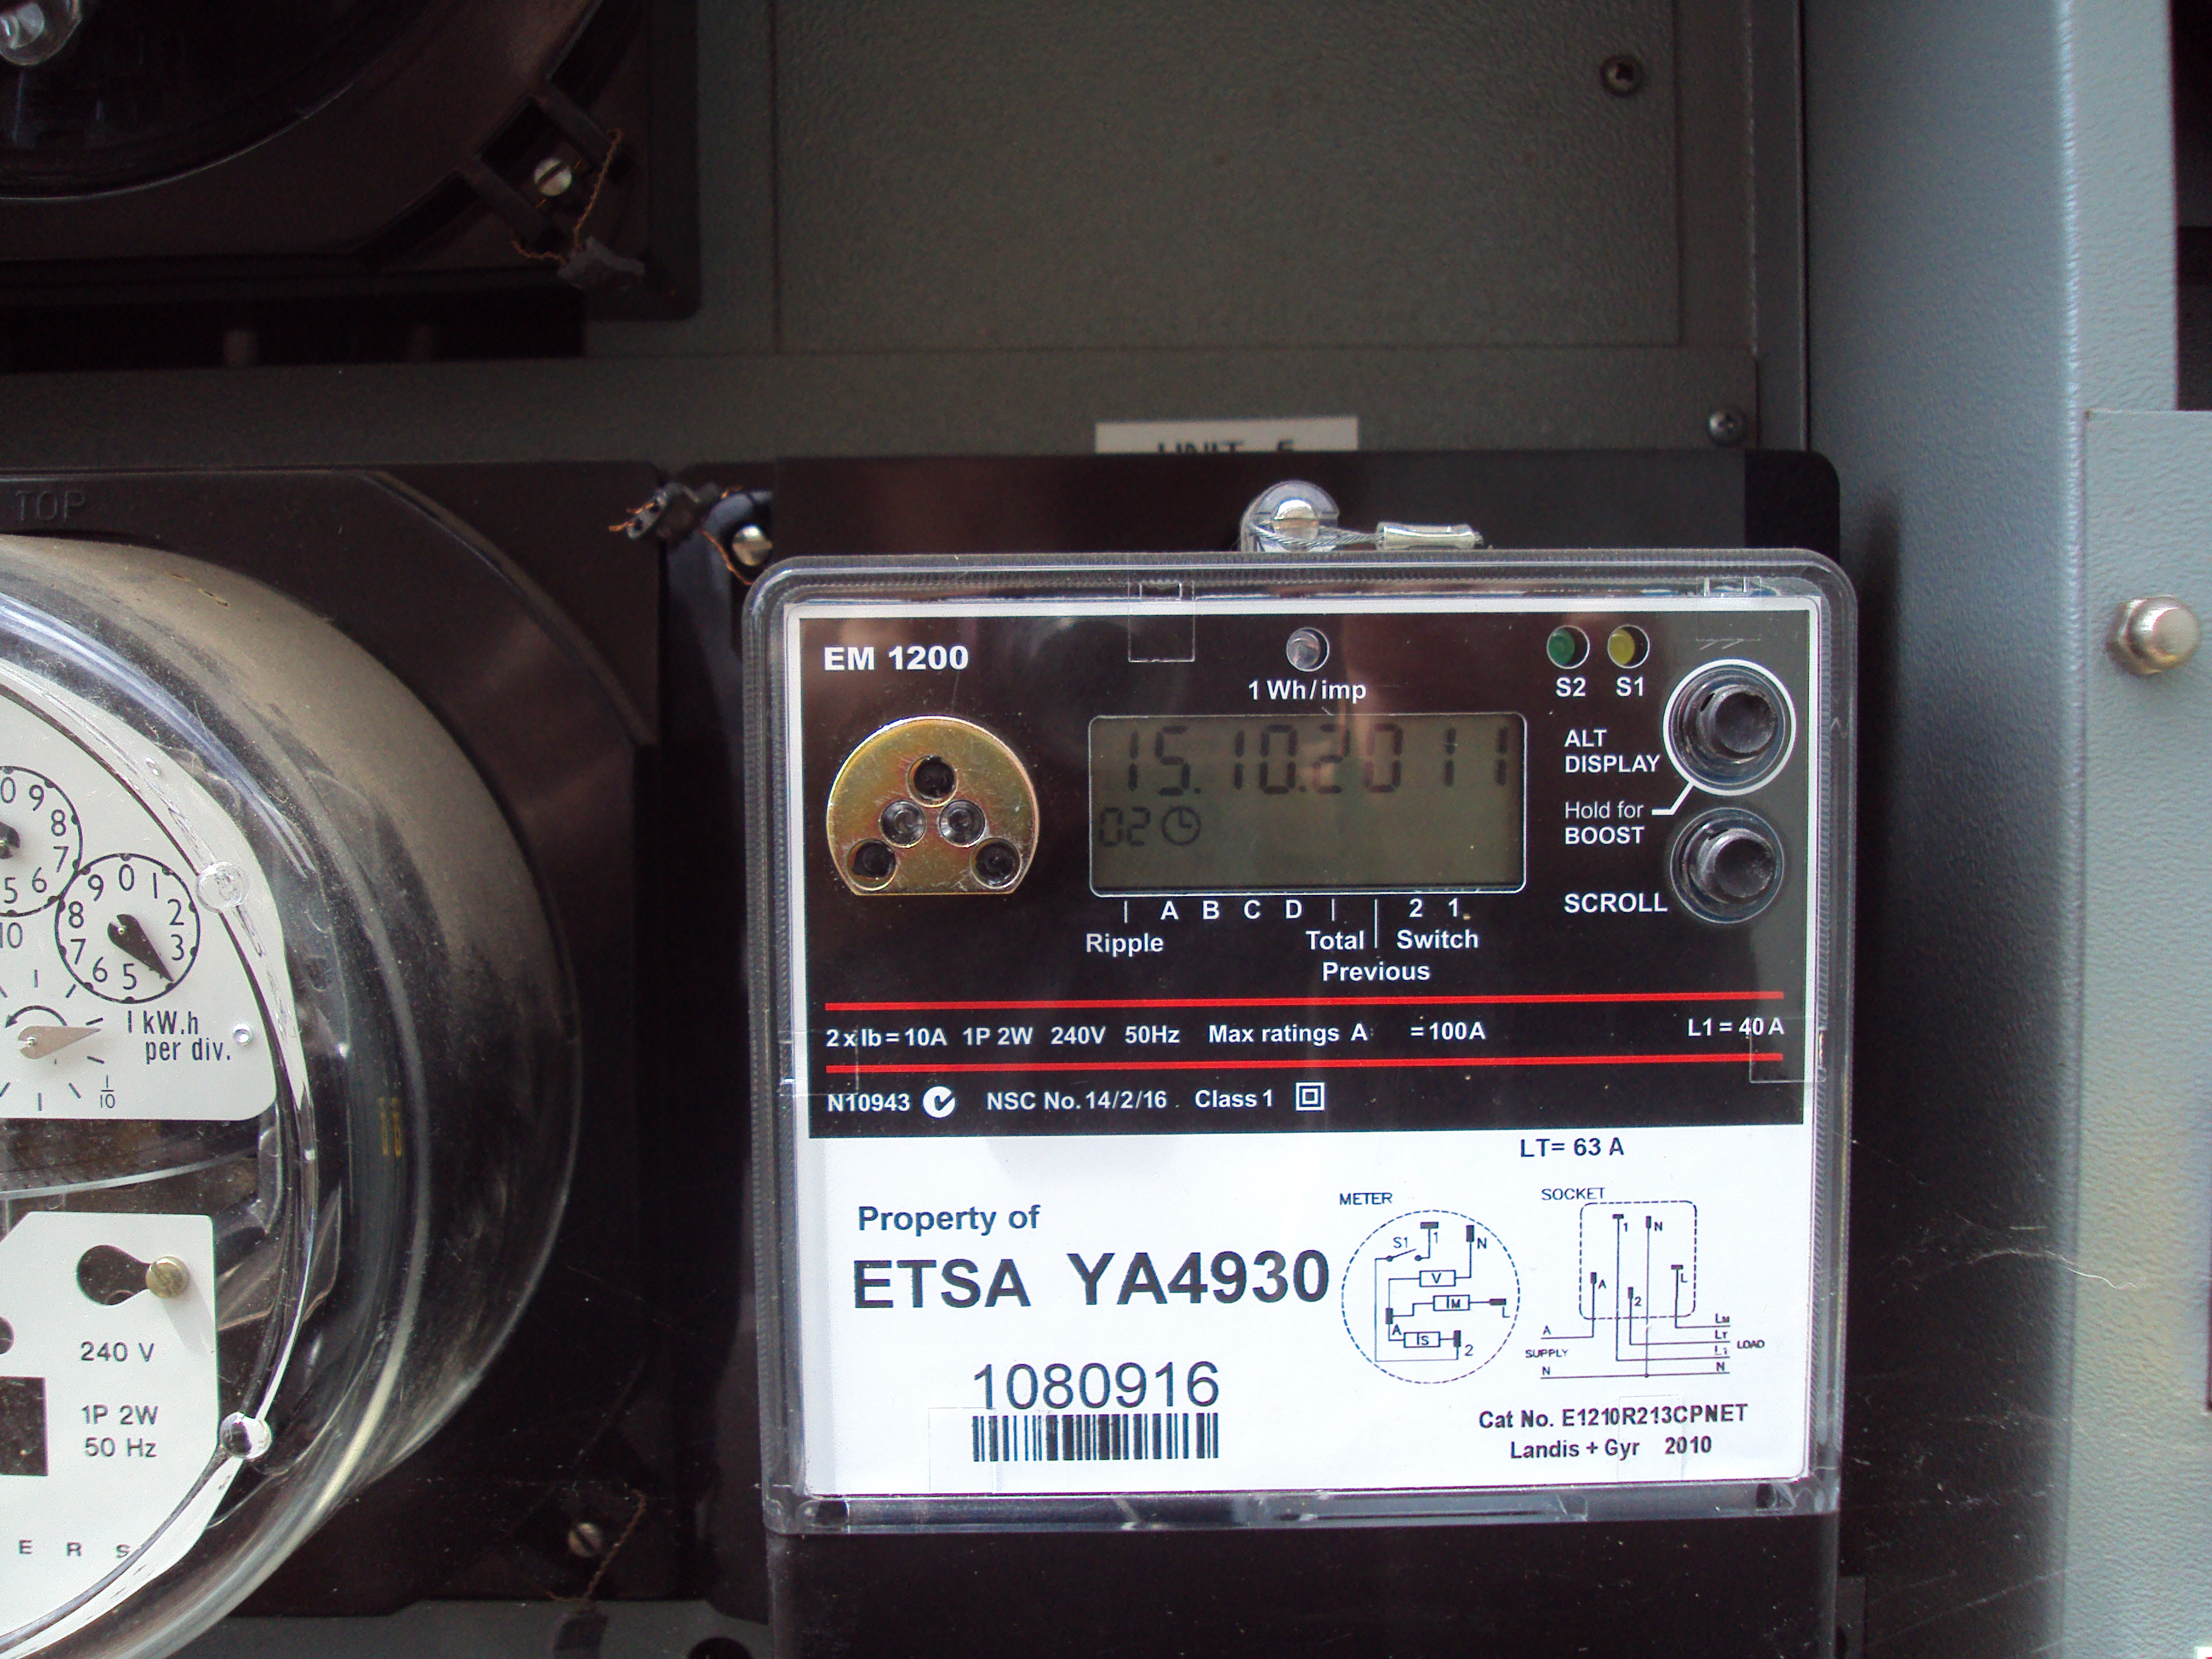 Getting New Electricity Meter